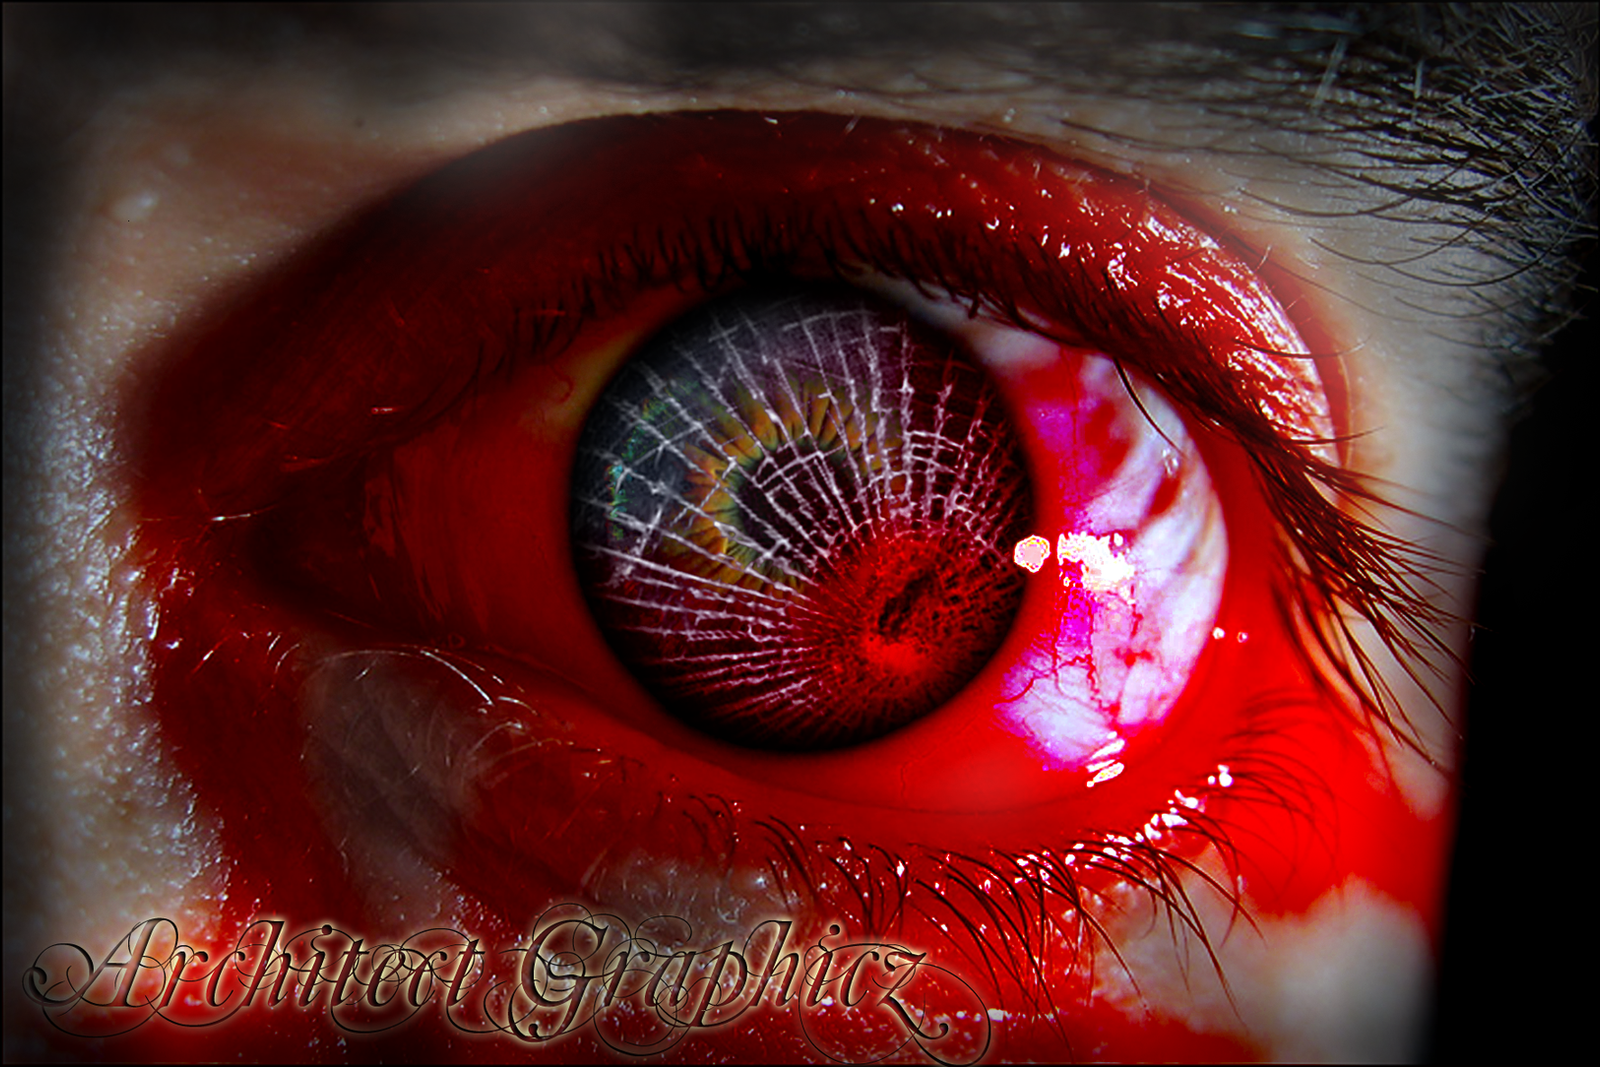 BROKEN EYE 2 by ArchitectGraphicz on deviantART: architectgraphicz.deviantart.com/art/broken-eye-2-101325387